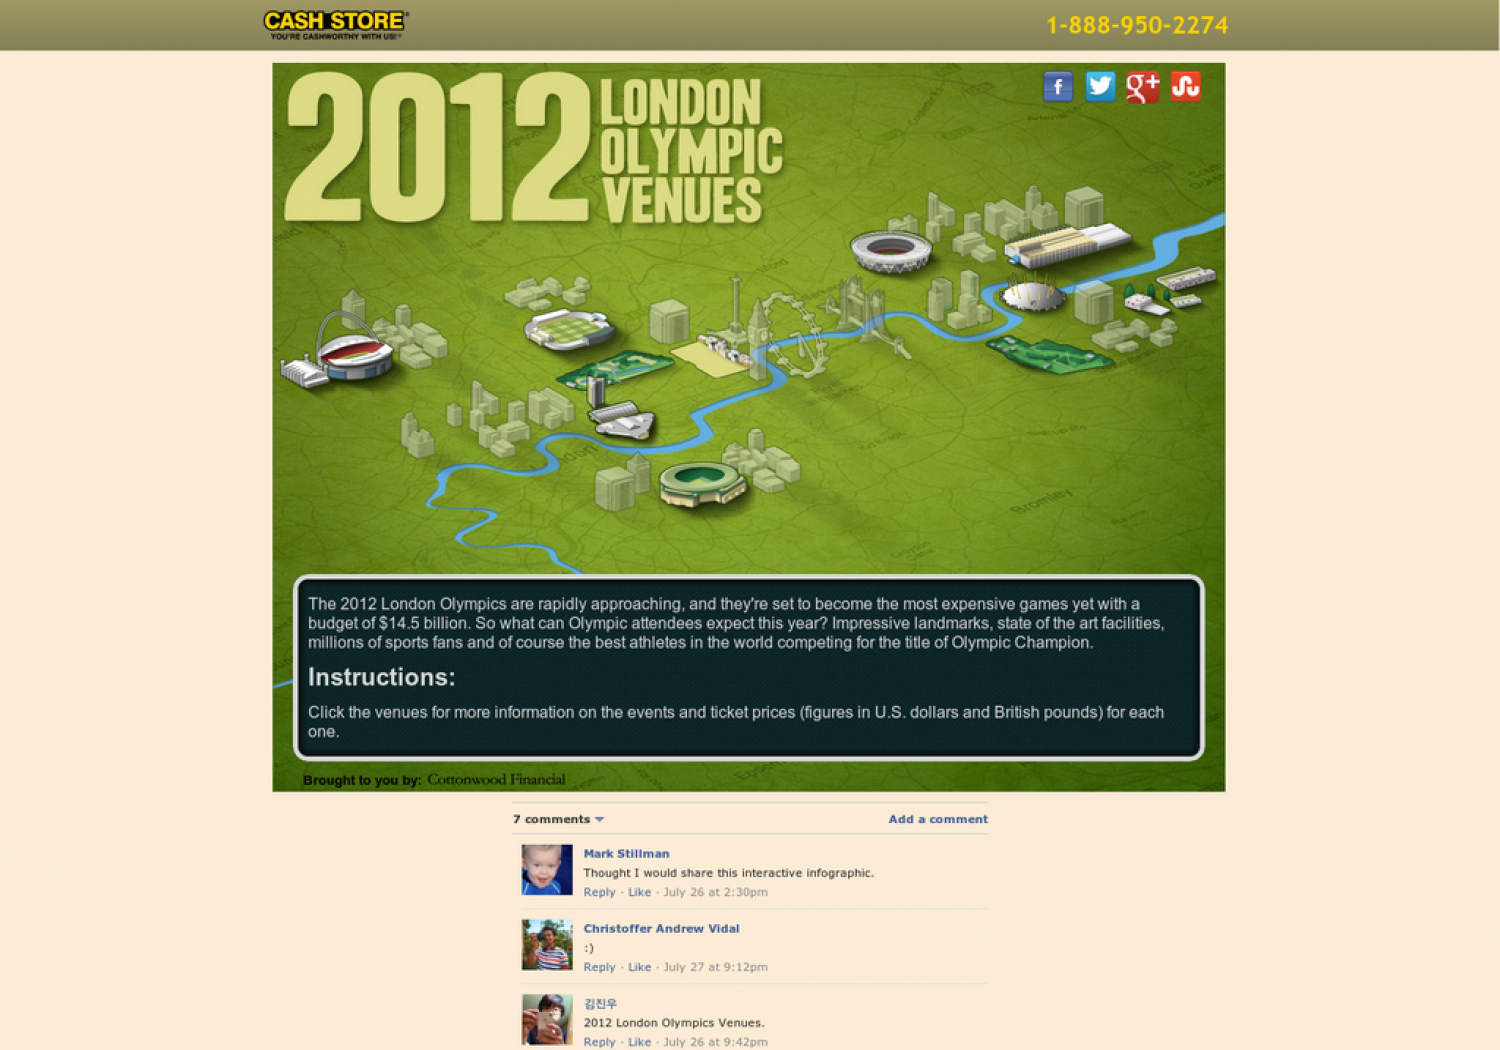 2012 London Olympic Venue Ticket Prices and Facts Infographic